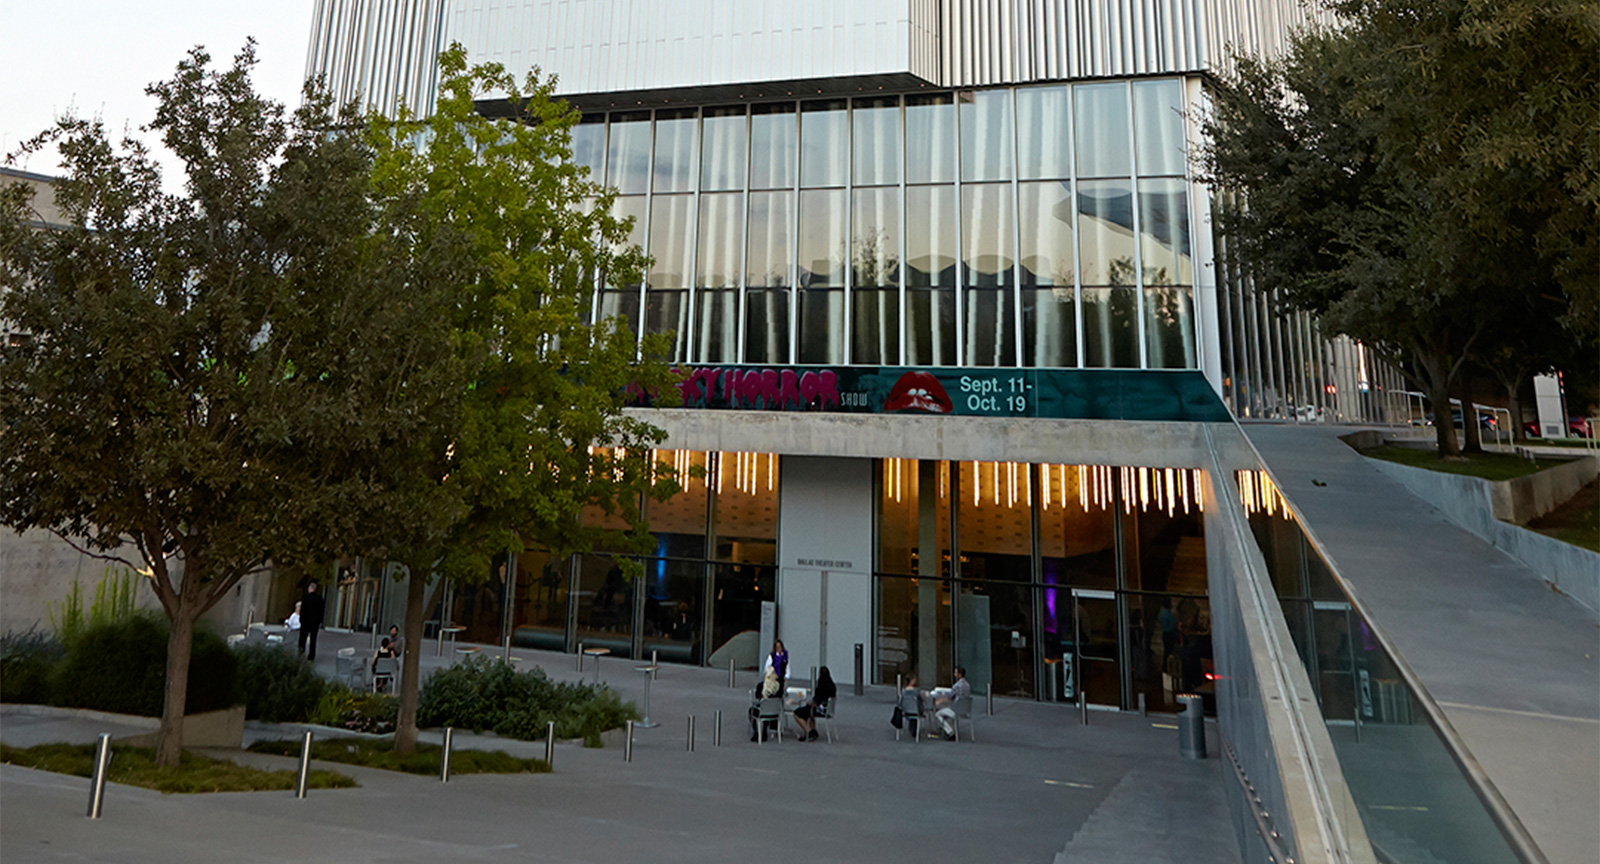 Dallas Arts District Performing Arts Wyly Theater